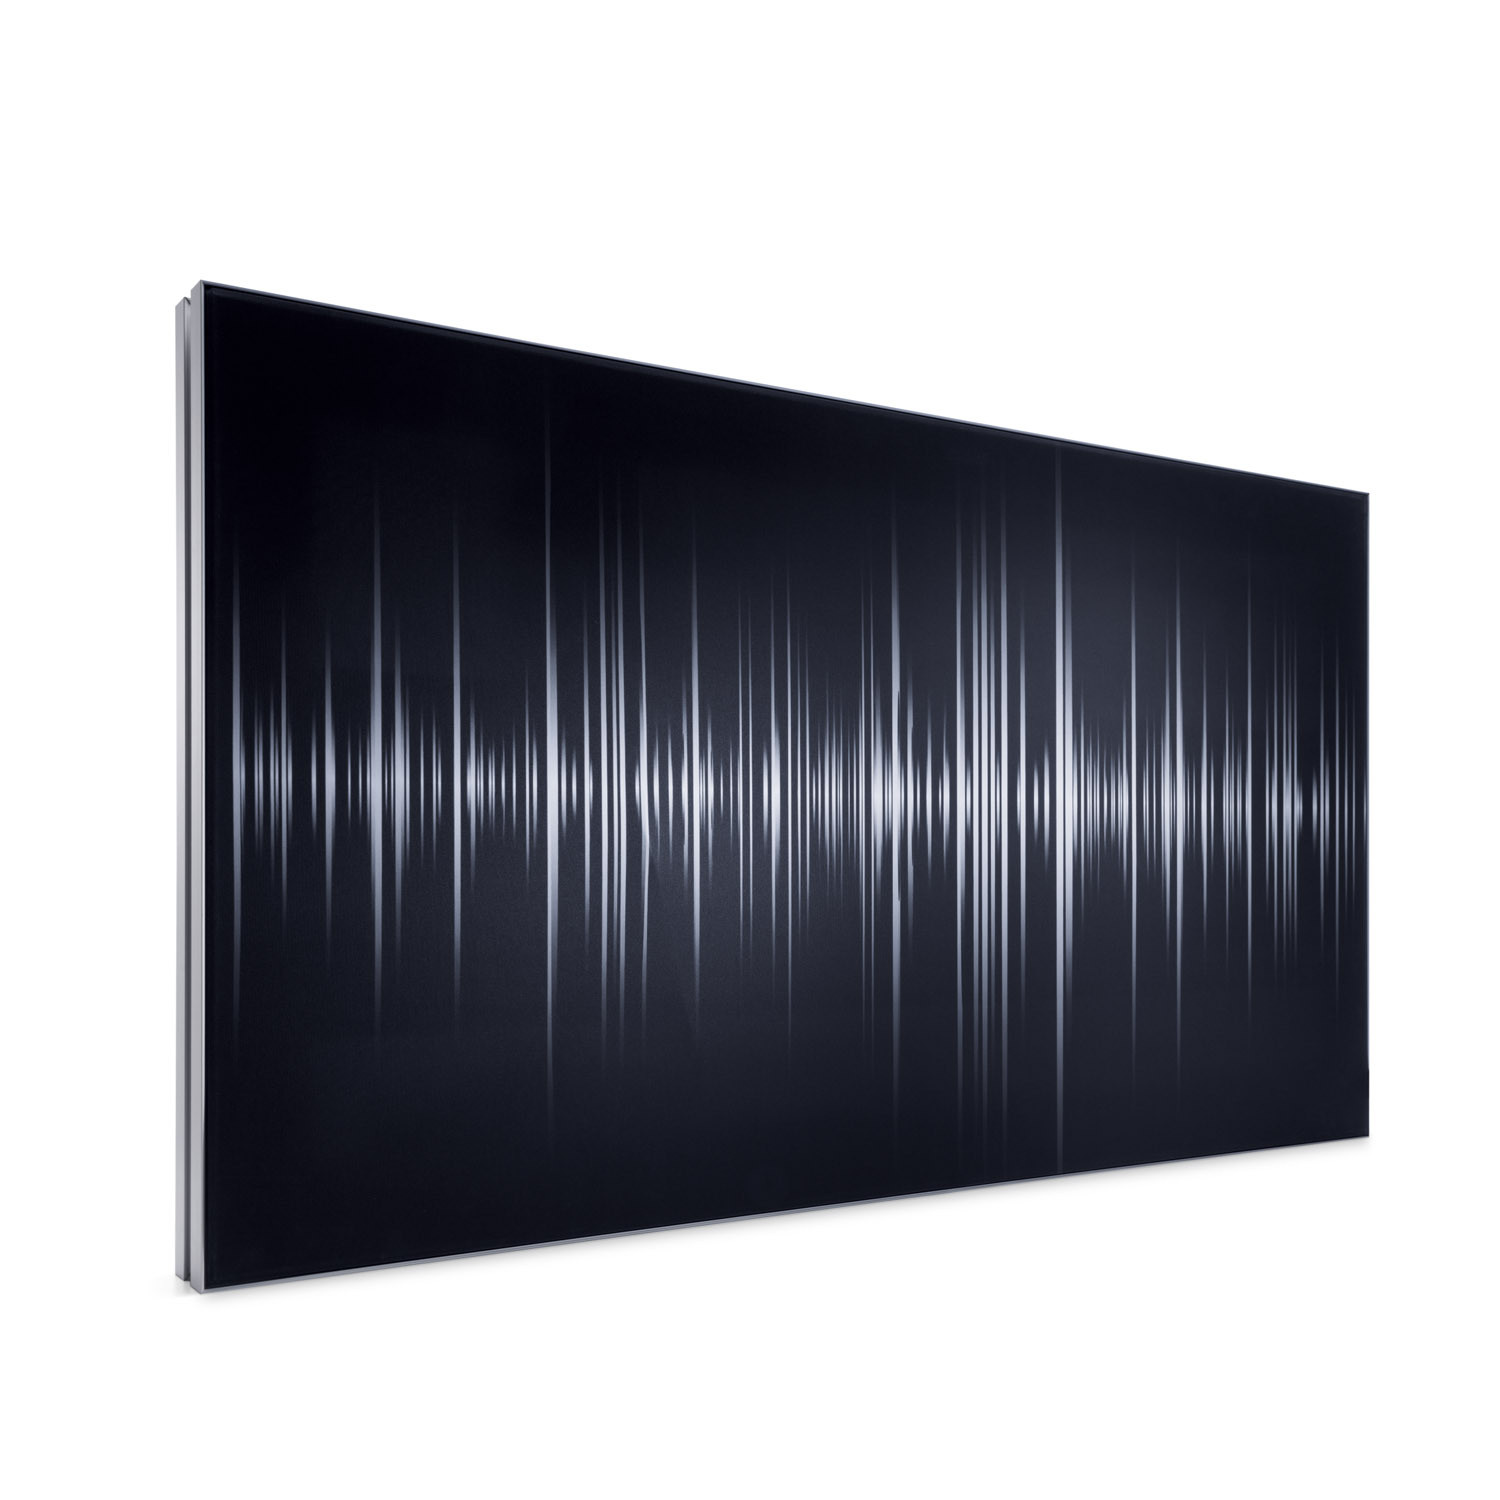 Mooia Acoustic Wall Panel